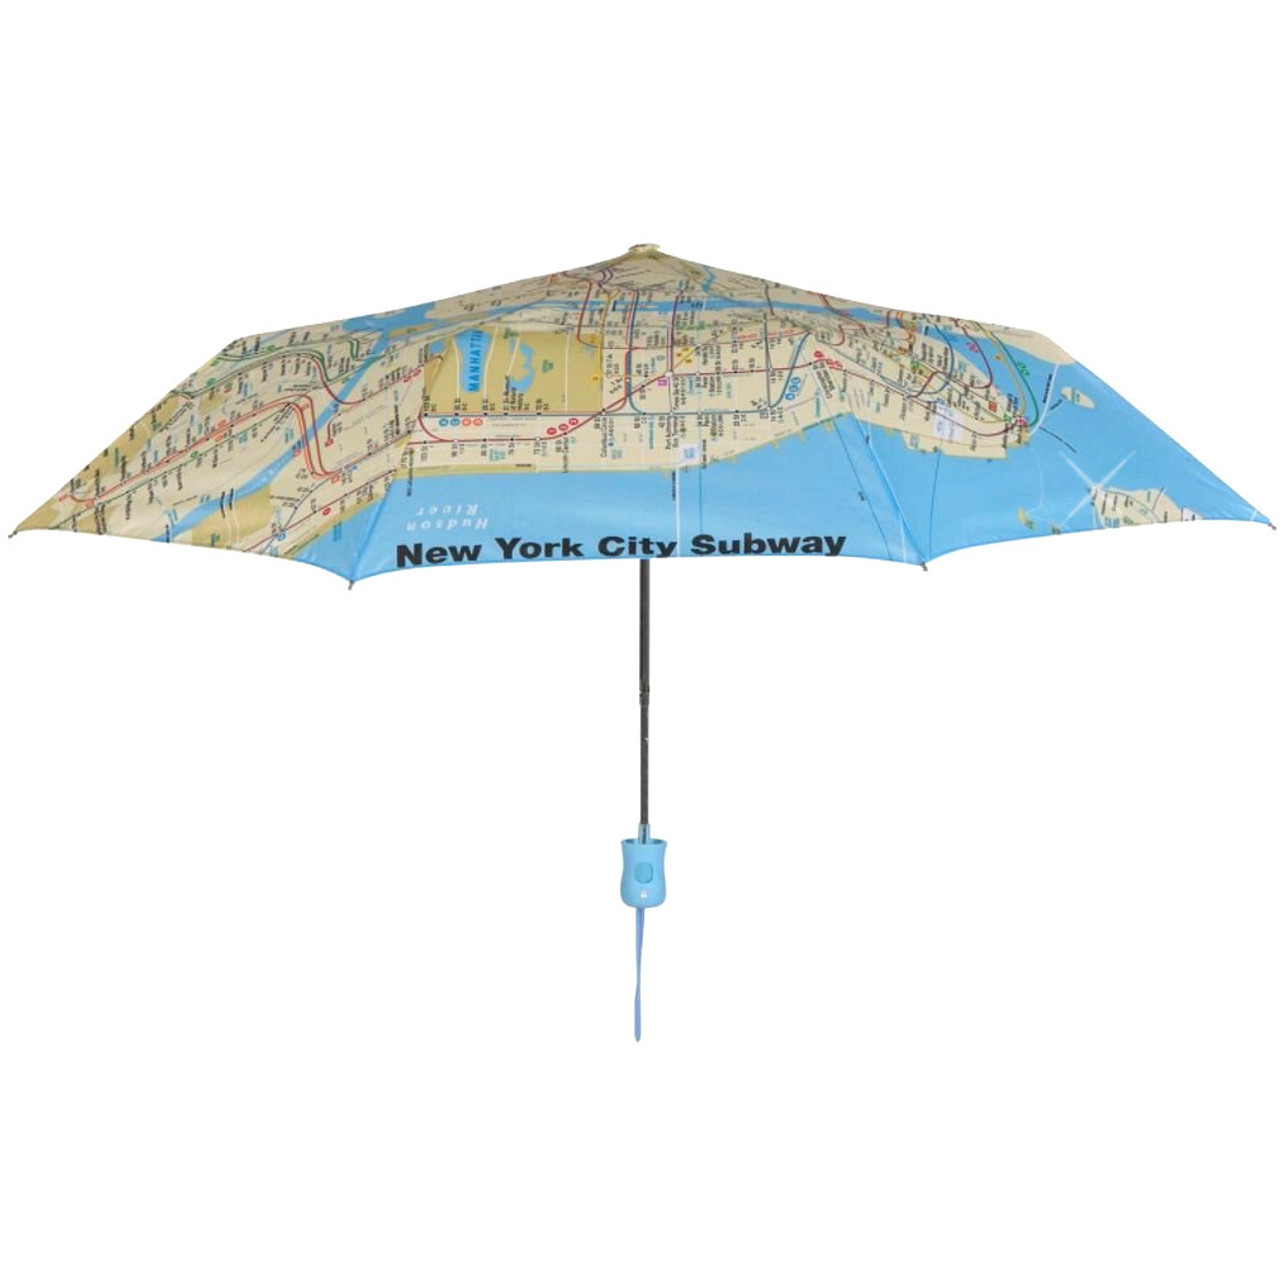 Framed New York Subway Map.New York City Subway Map Umbrella